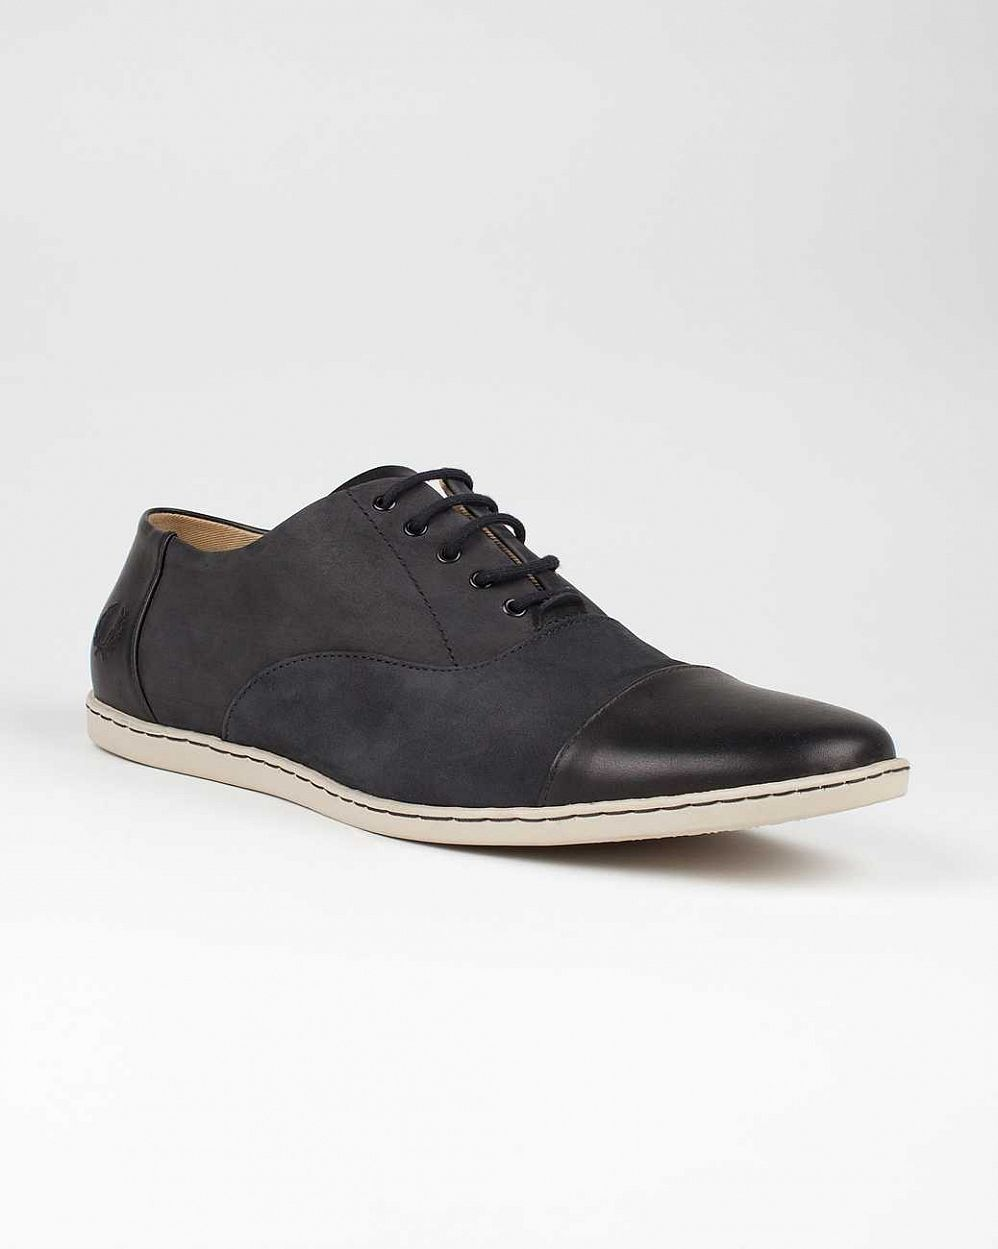 купить Кеды Fred Perry Carey Toe Cap Nubuck Leather Black в Москве